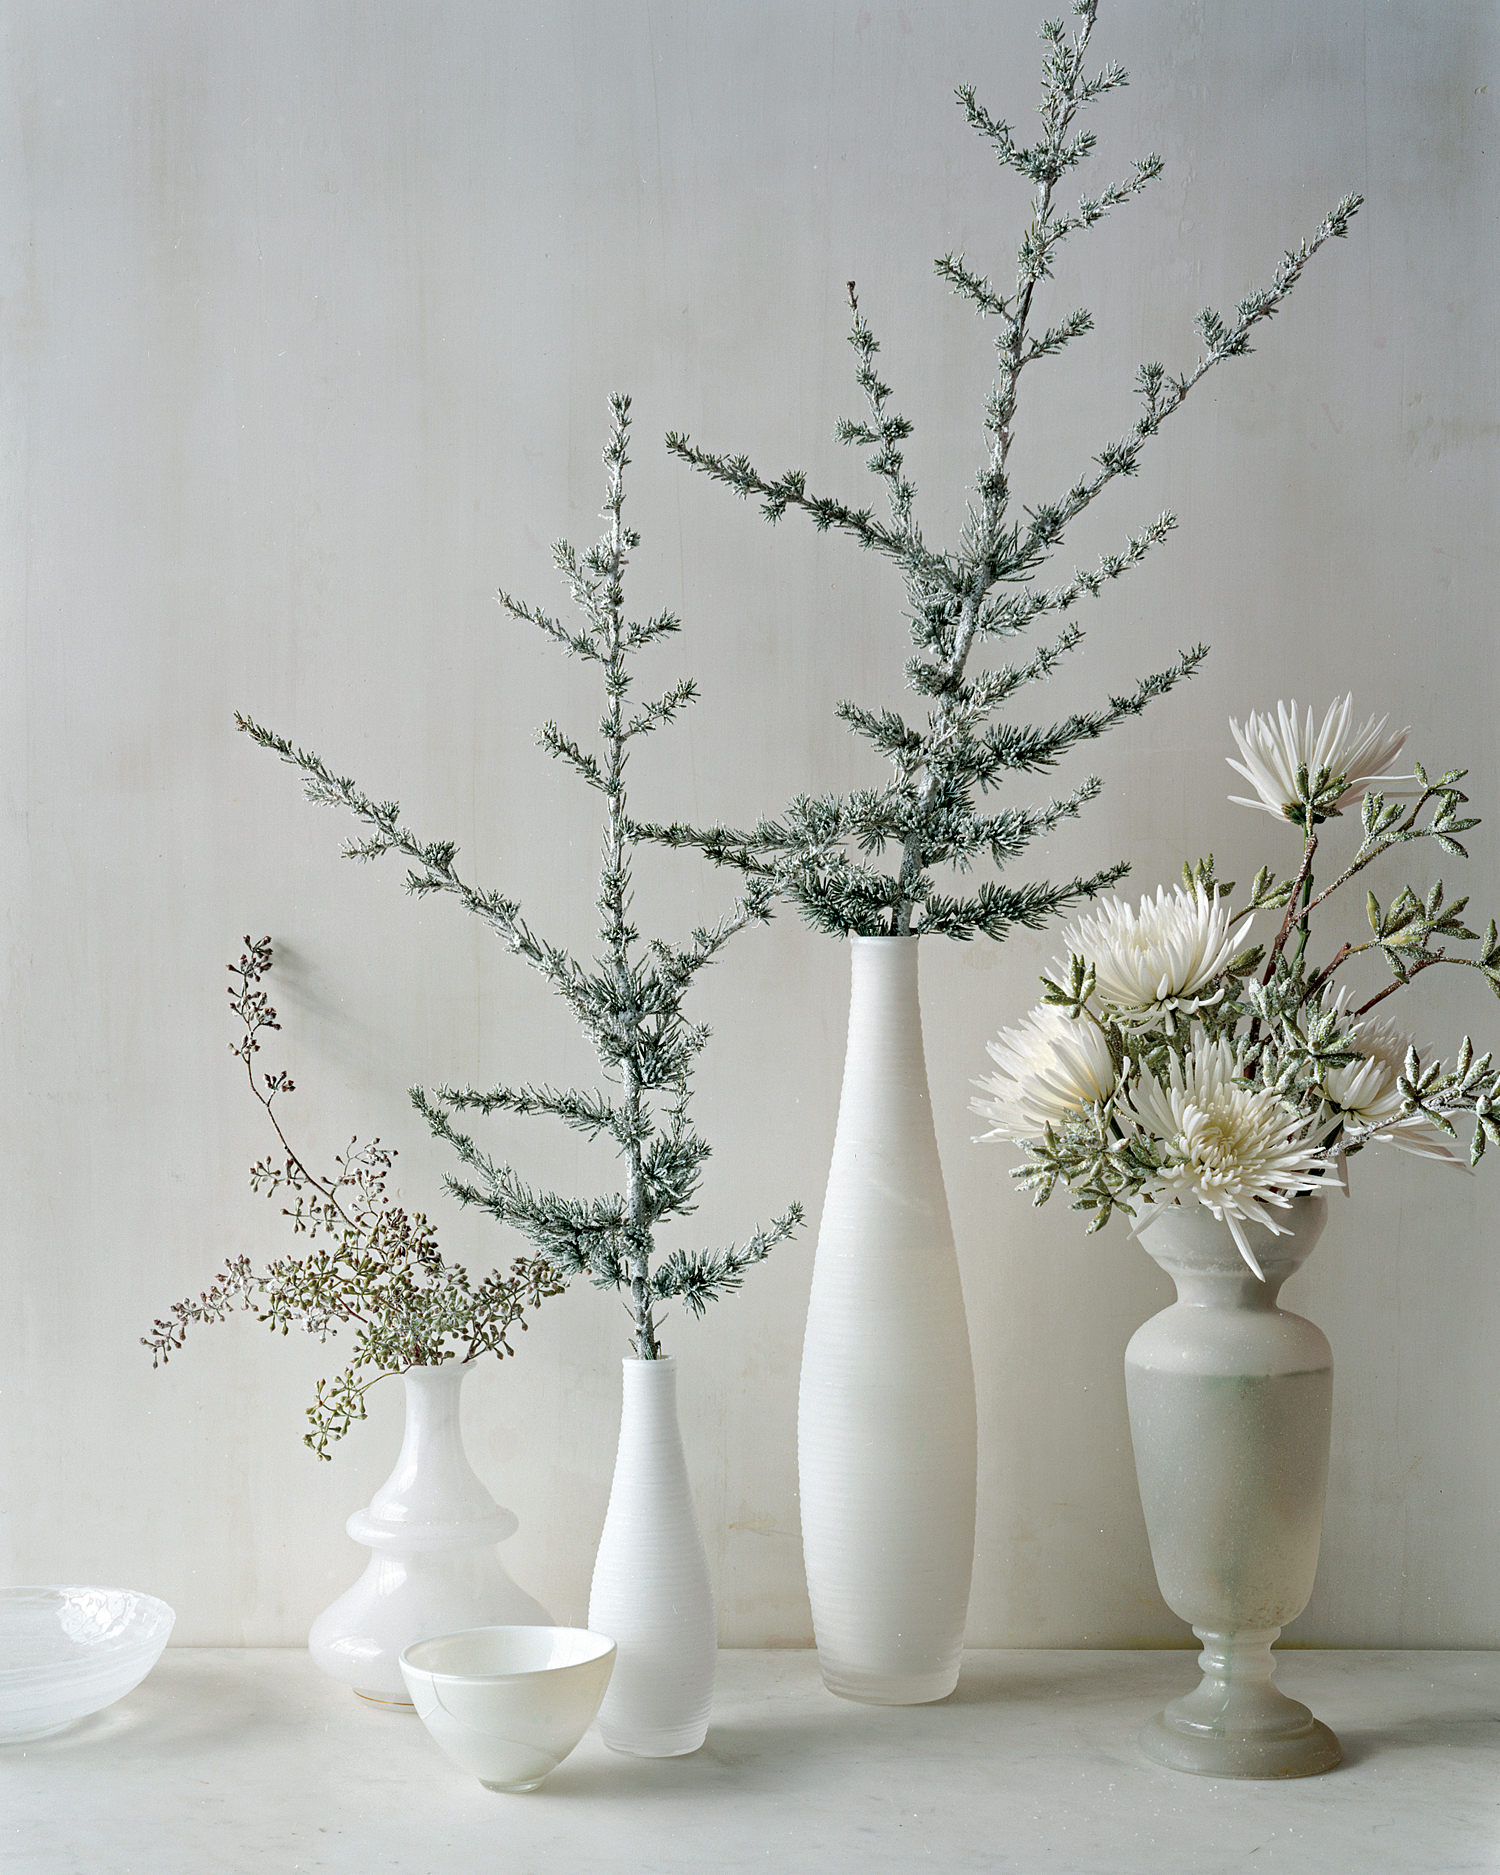 Small White Arrangements